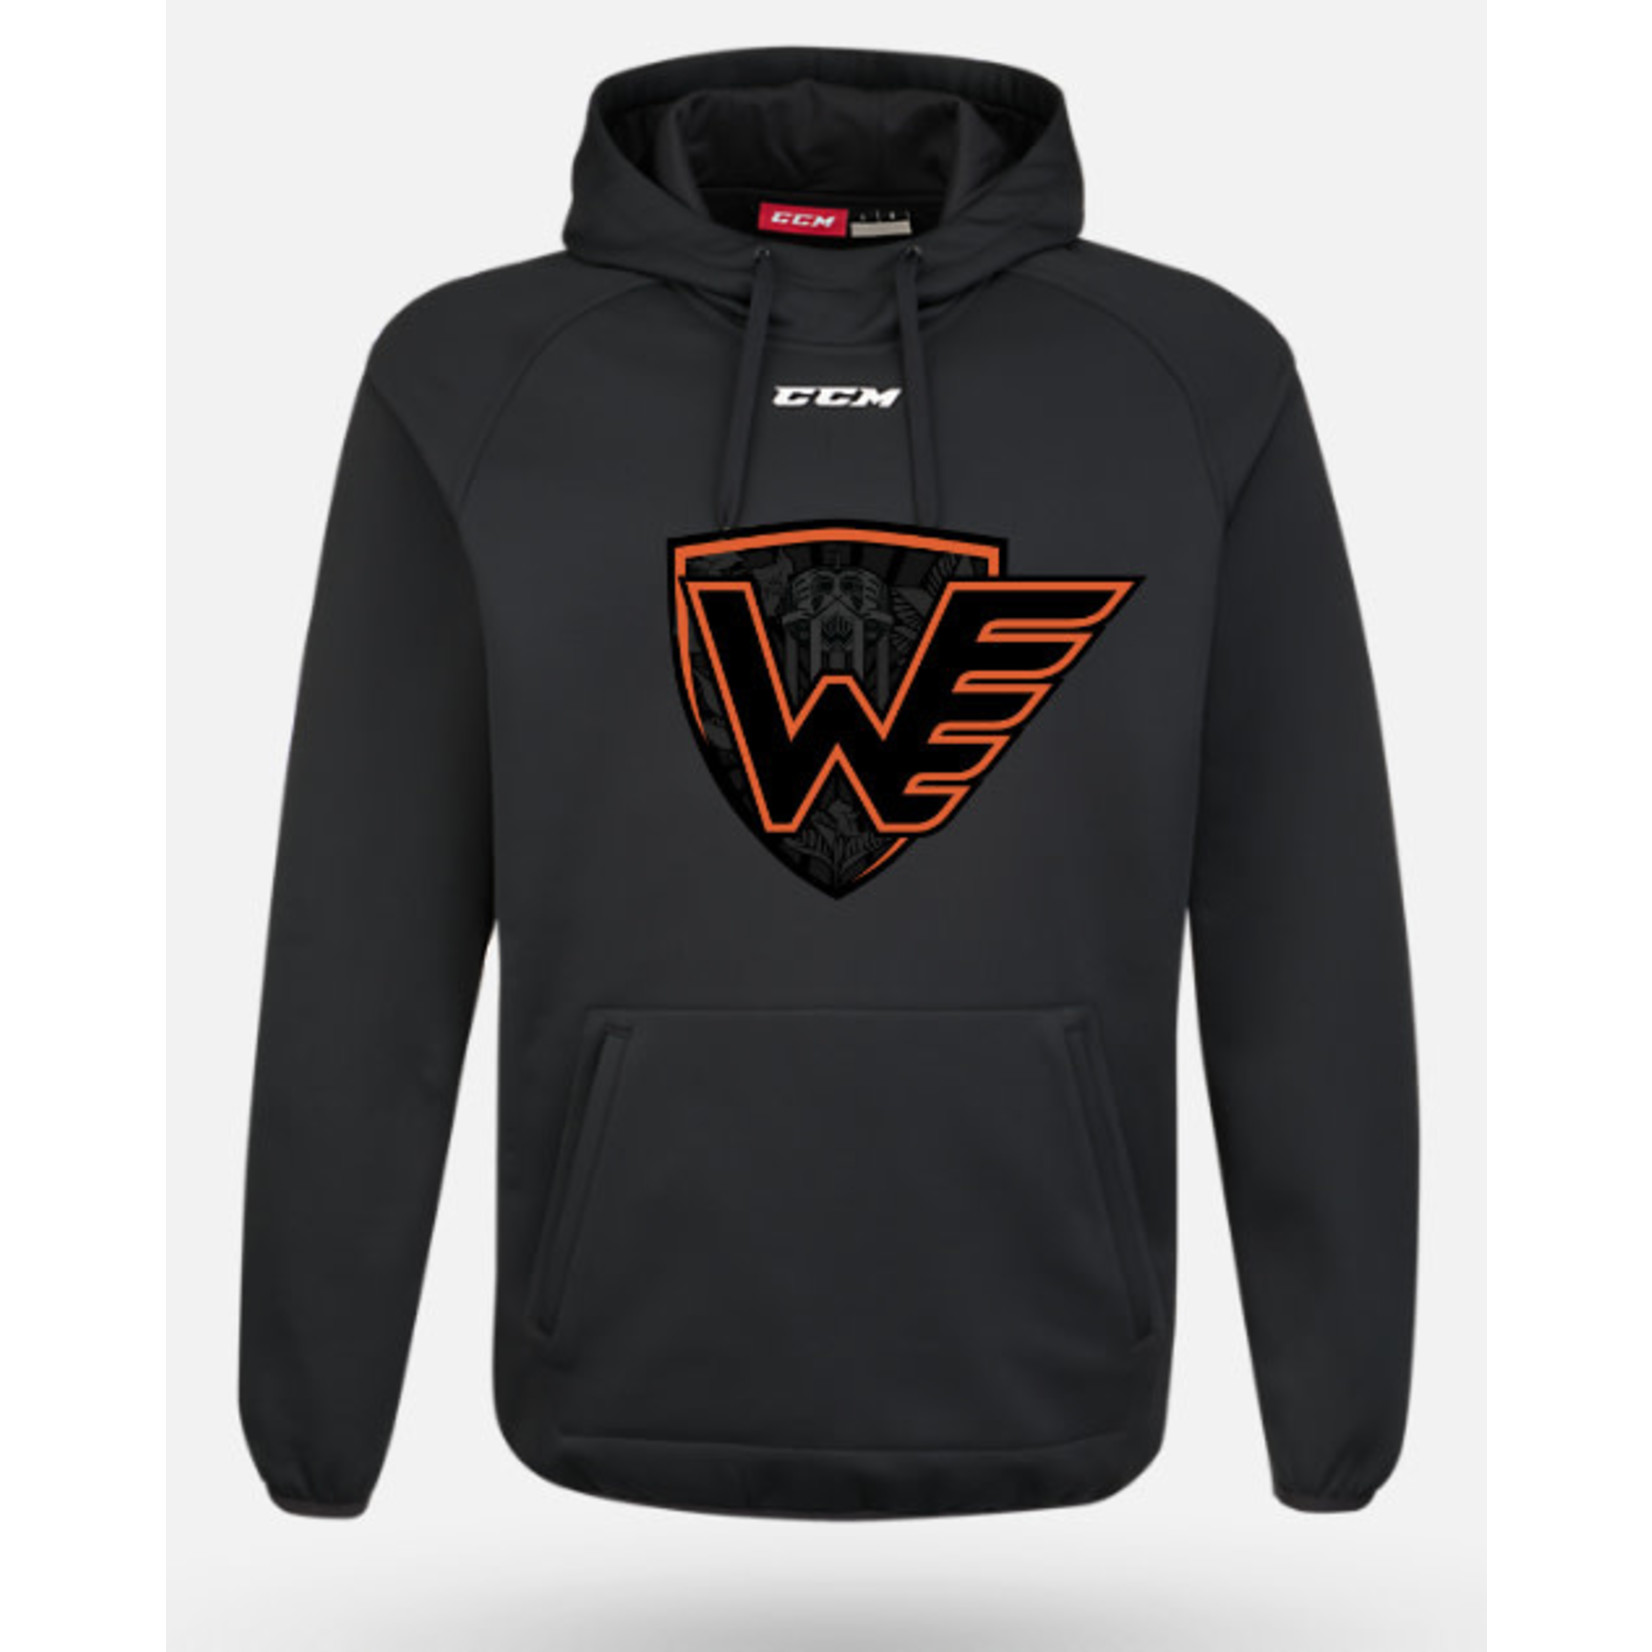 CCM CCM Pullover Hoodie, Team Training Winkler Flyers, Youth